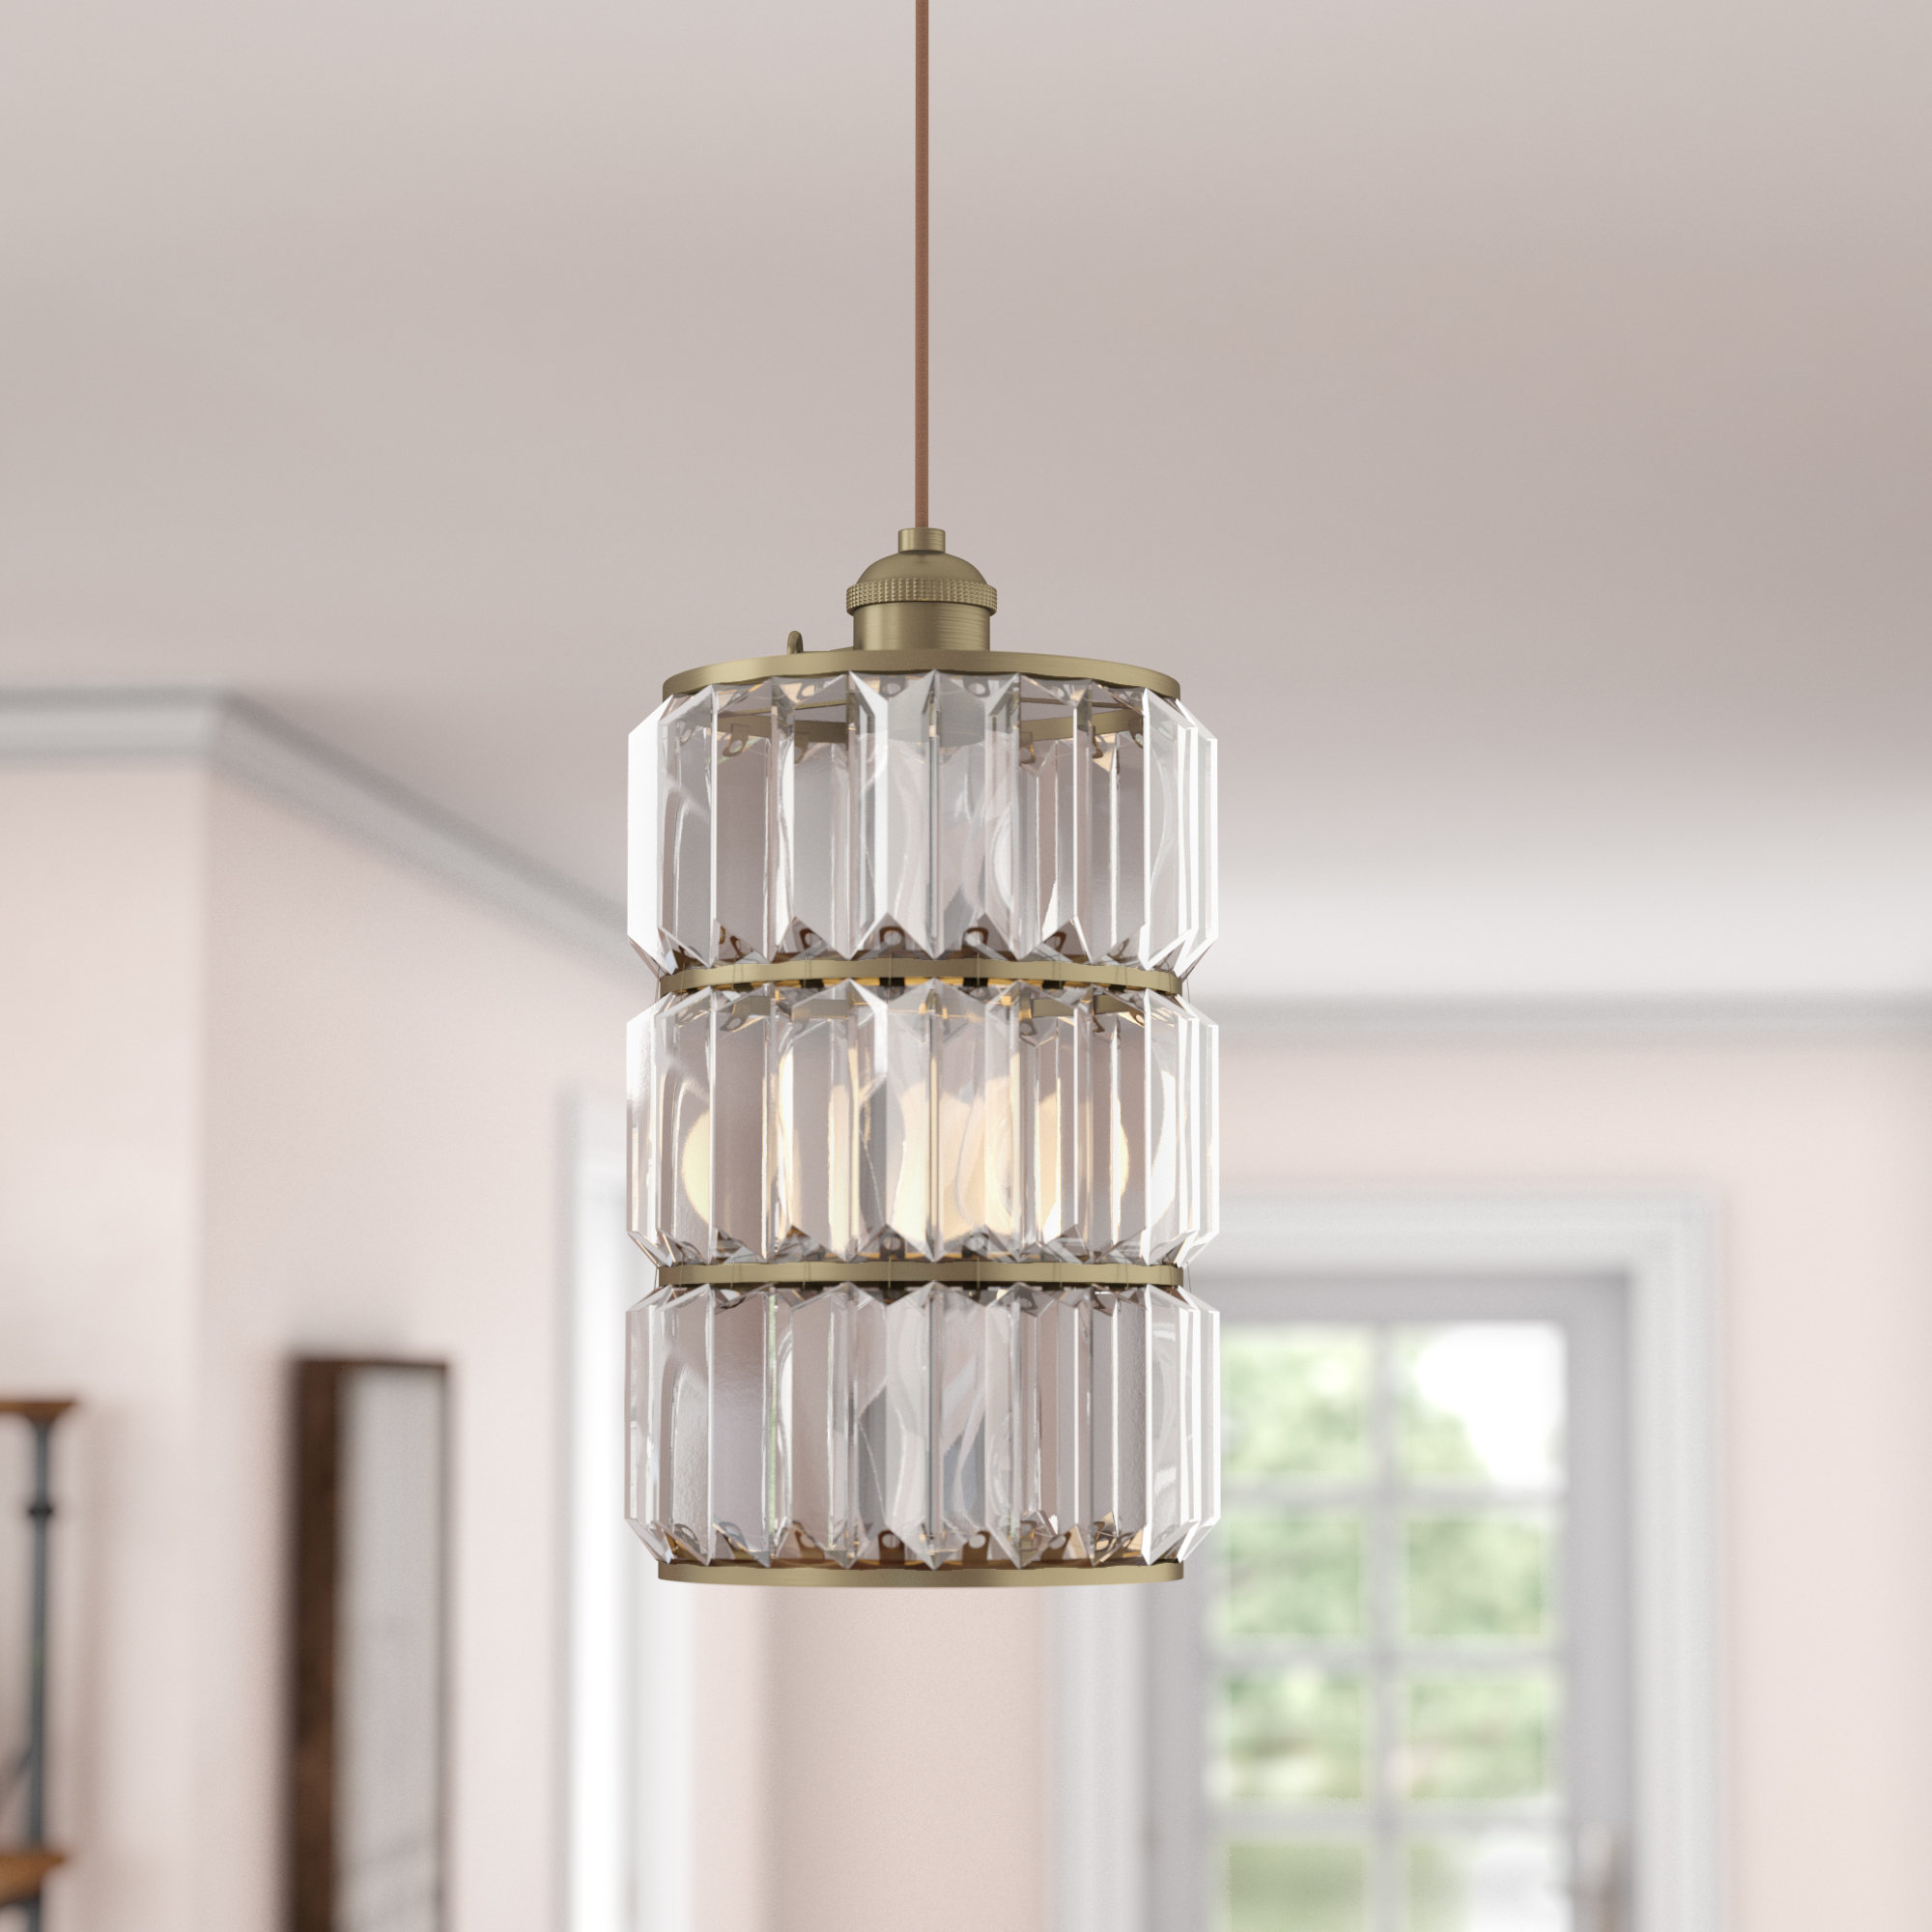 Baxley 1-Light Single Cylinder Pendant with regard to Trendy Nadeau 1-Light Single Cone Pendants